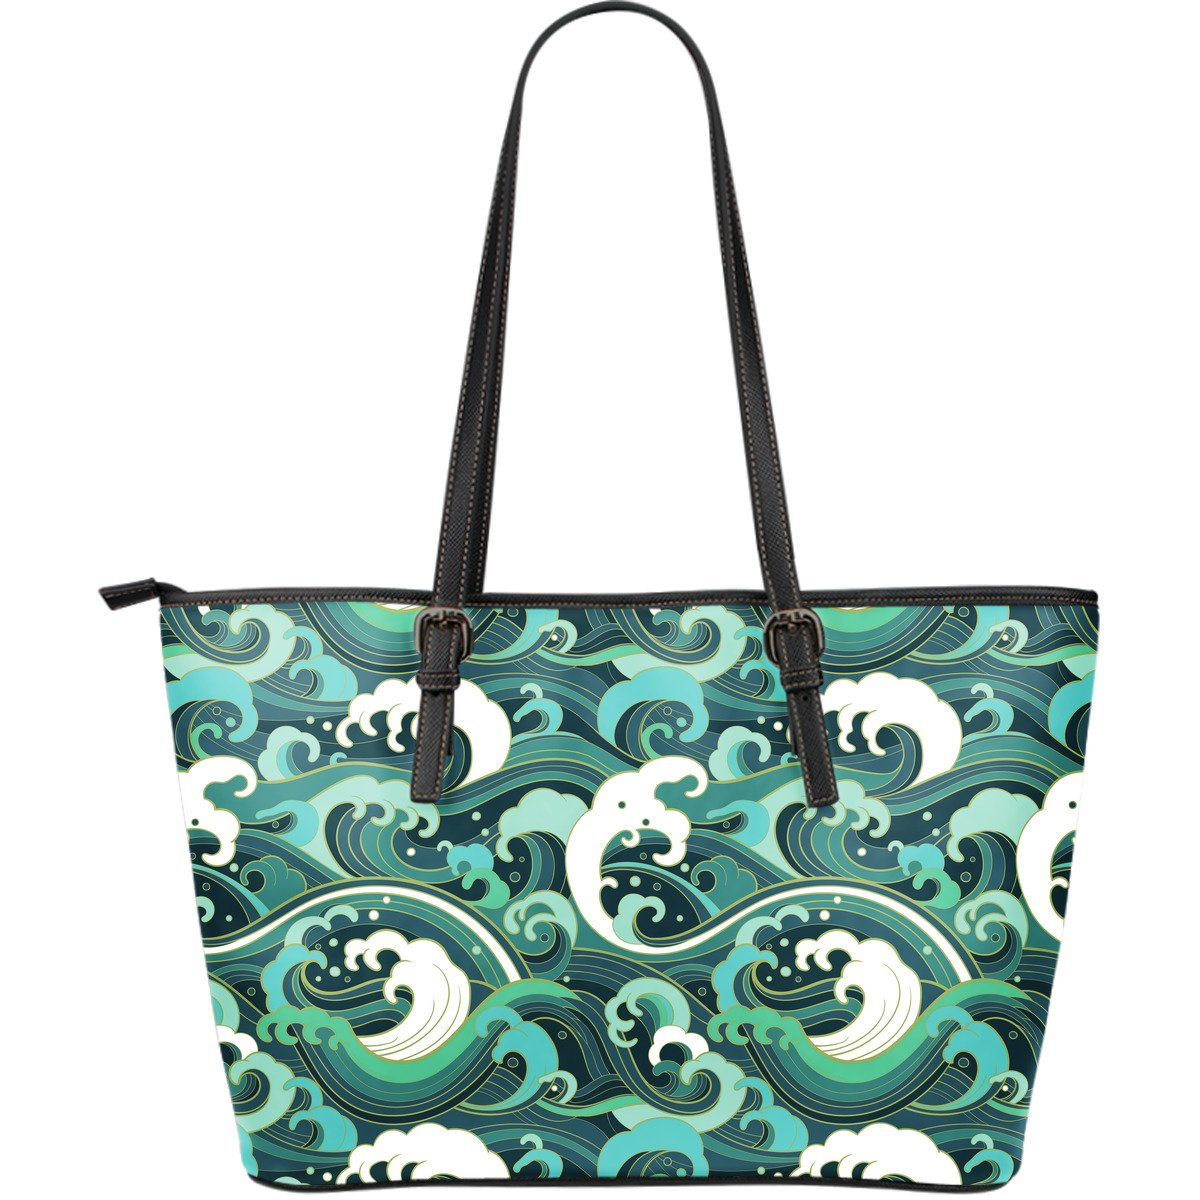 Deep Sea Wave Surfing Pattern Print Leather Tote Bag GearFrost